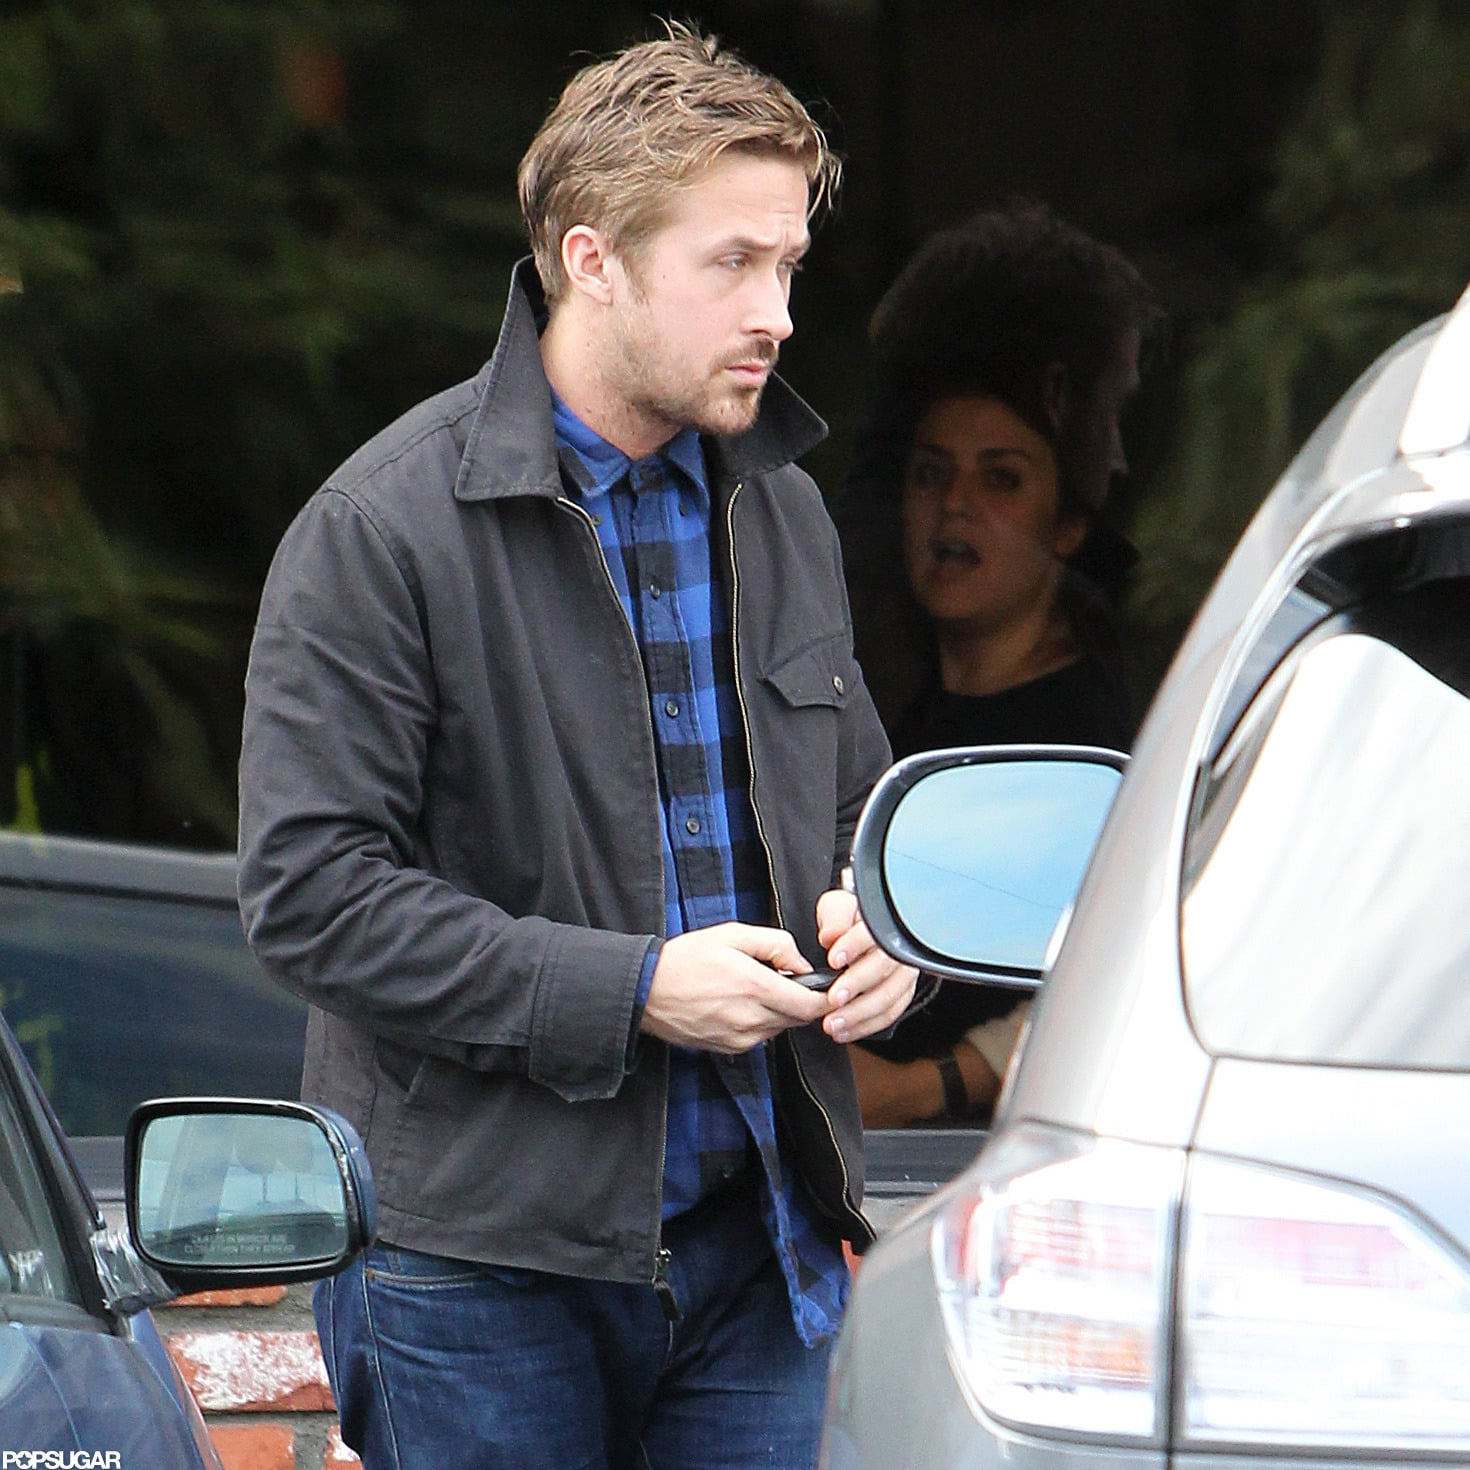 Ryan Gosling wore a checked shirt and jeans out in Los Feliz.